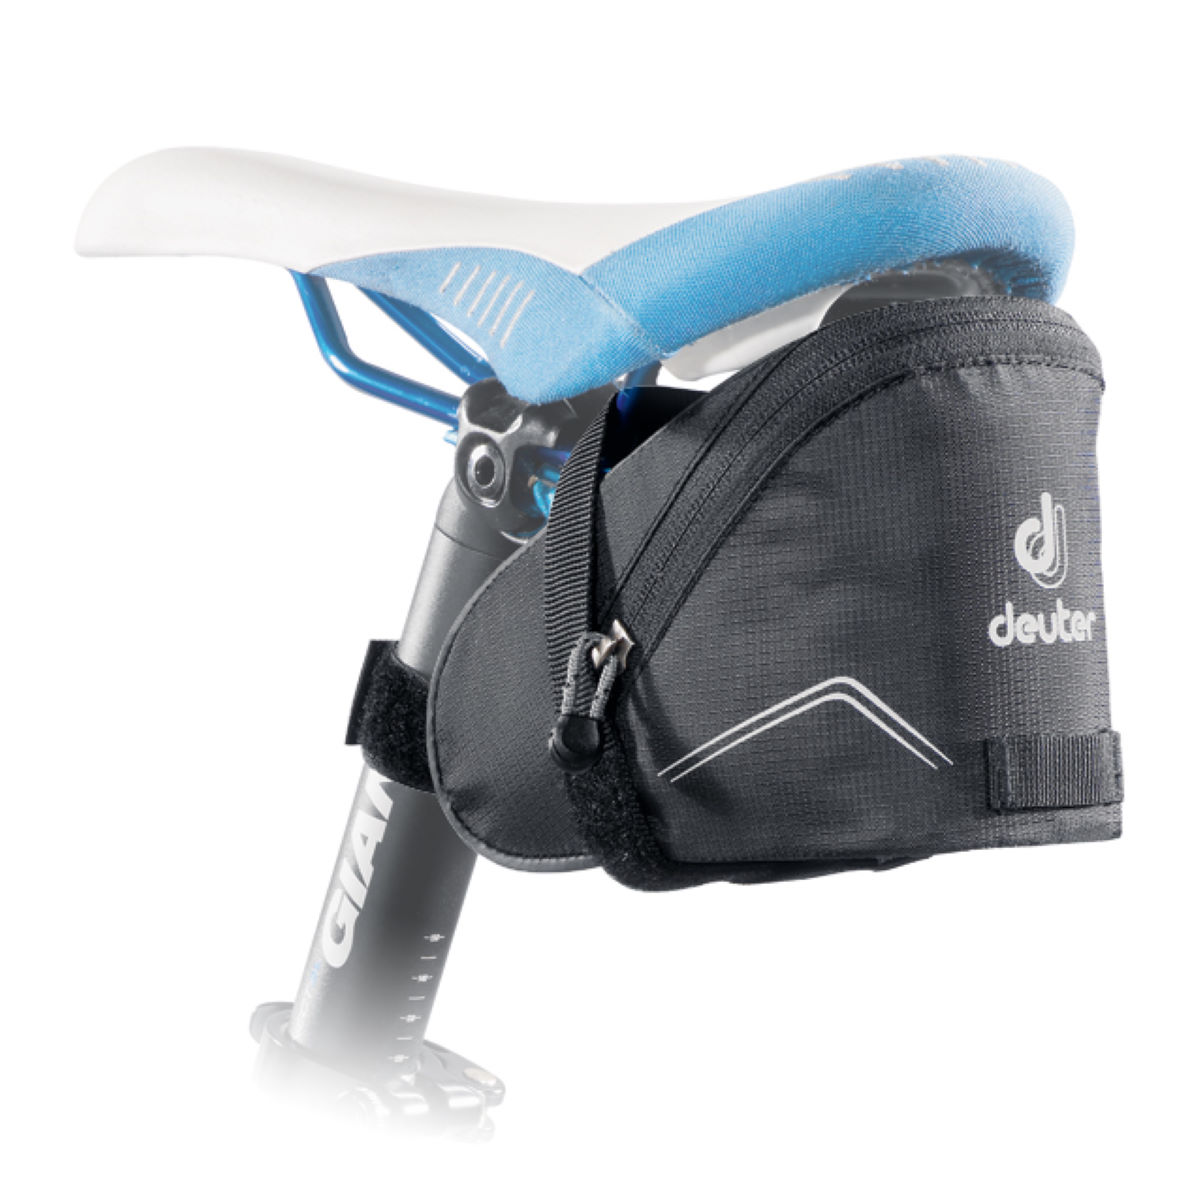 Deuter Bike Bag I - 0.8 Litre